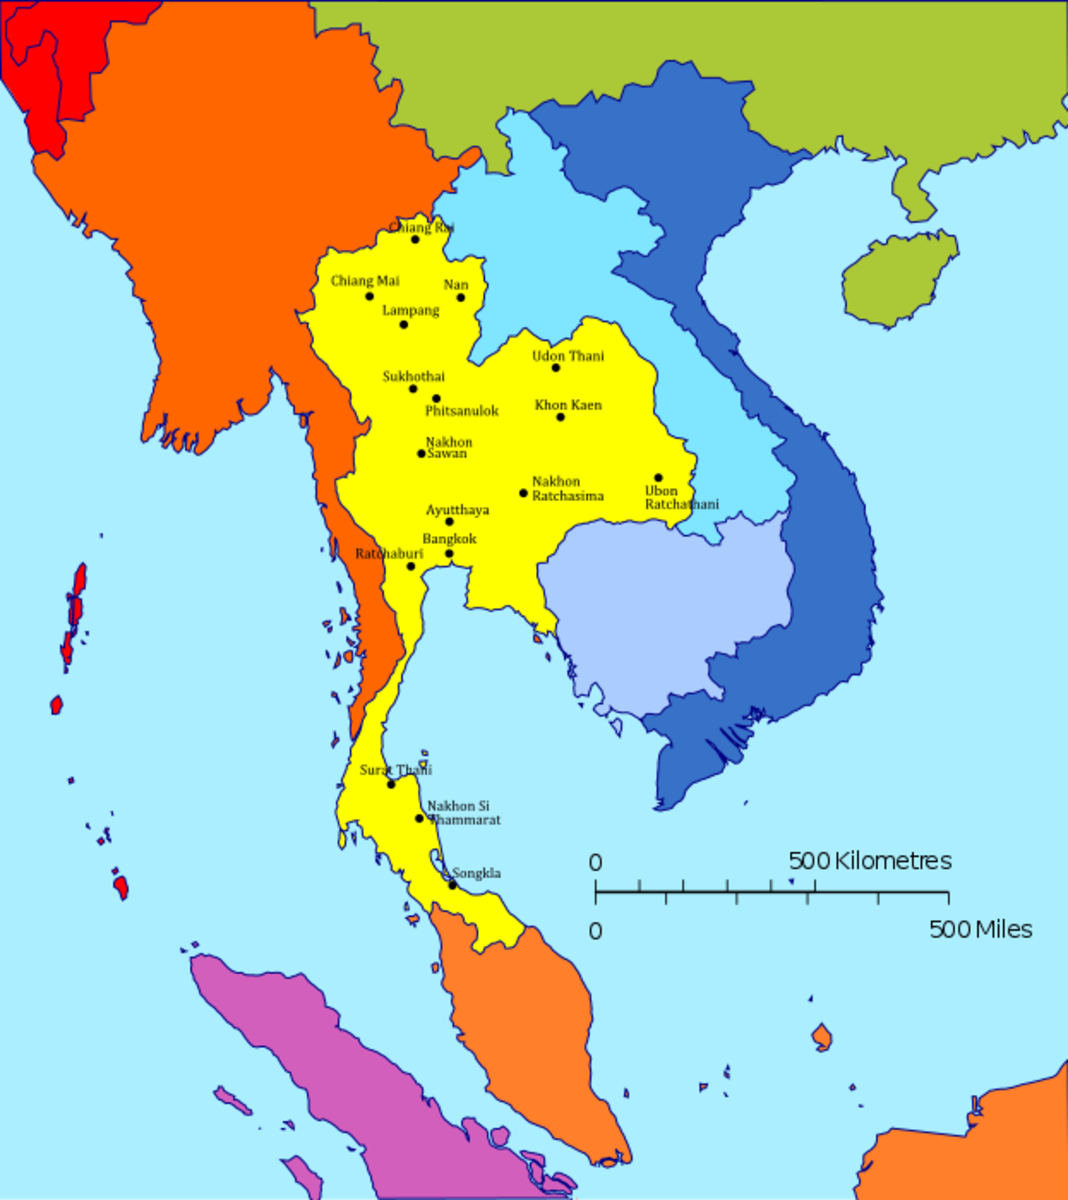 Map of Thailand in relation to Southeast Asia